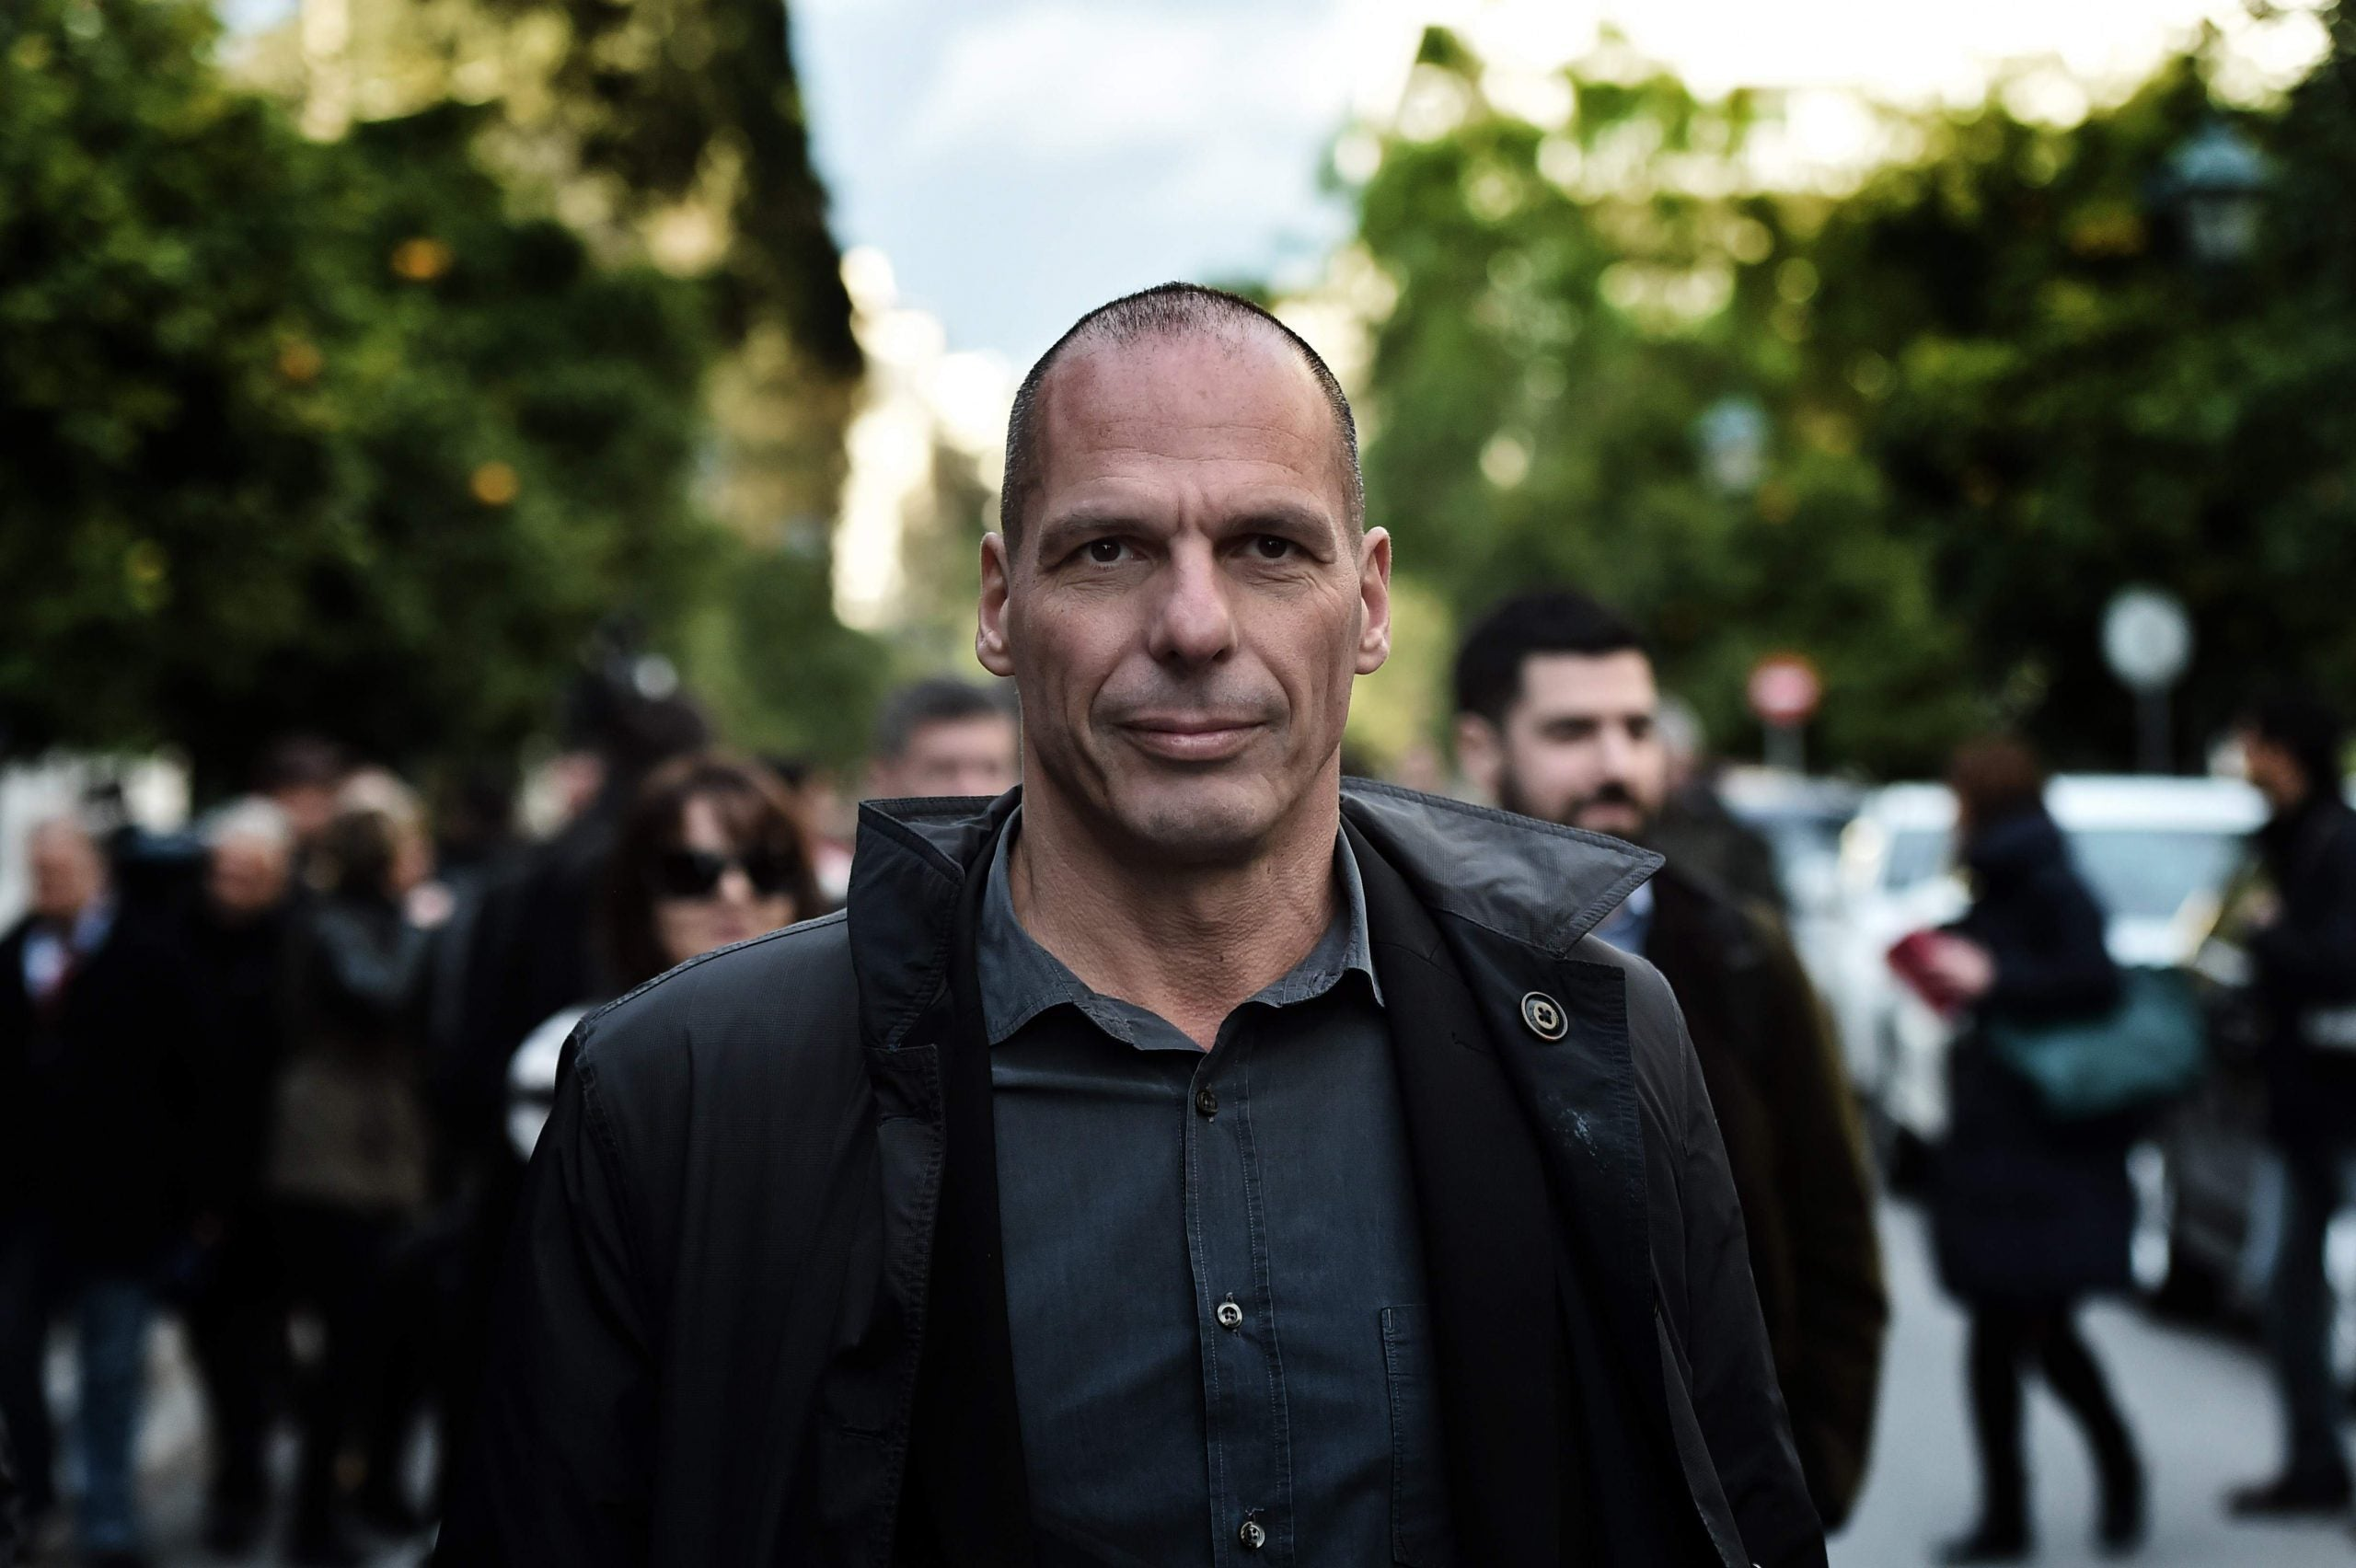 As Greeks pin their hopes on change, Syriza must stand firm against the country's elite